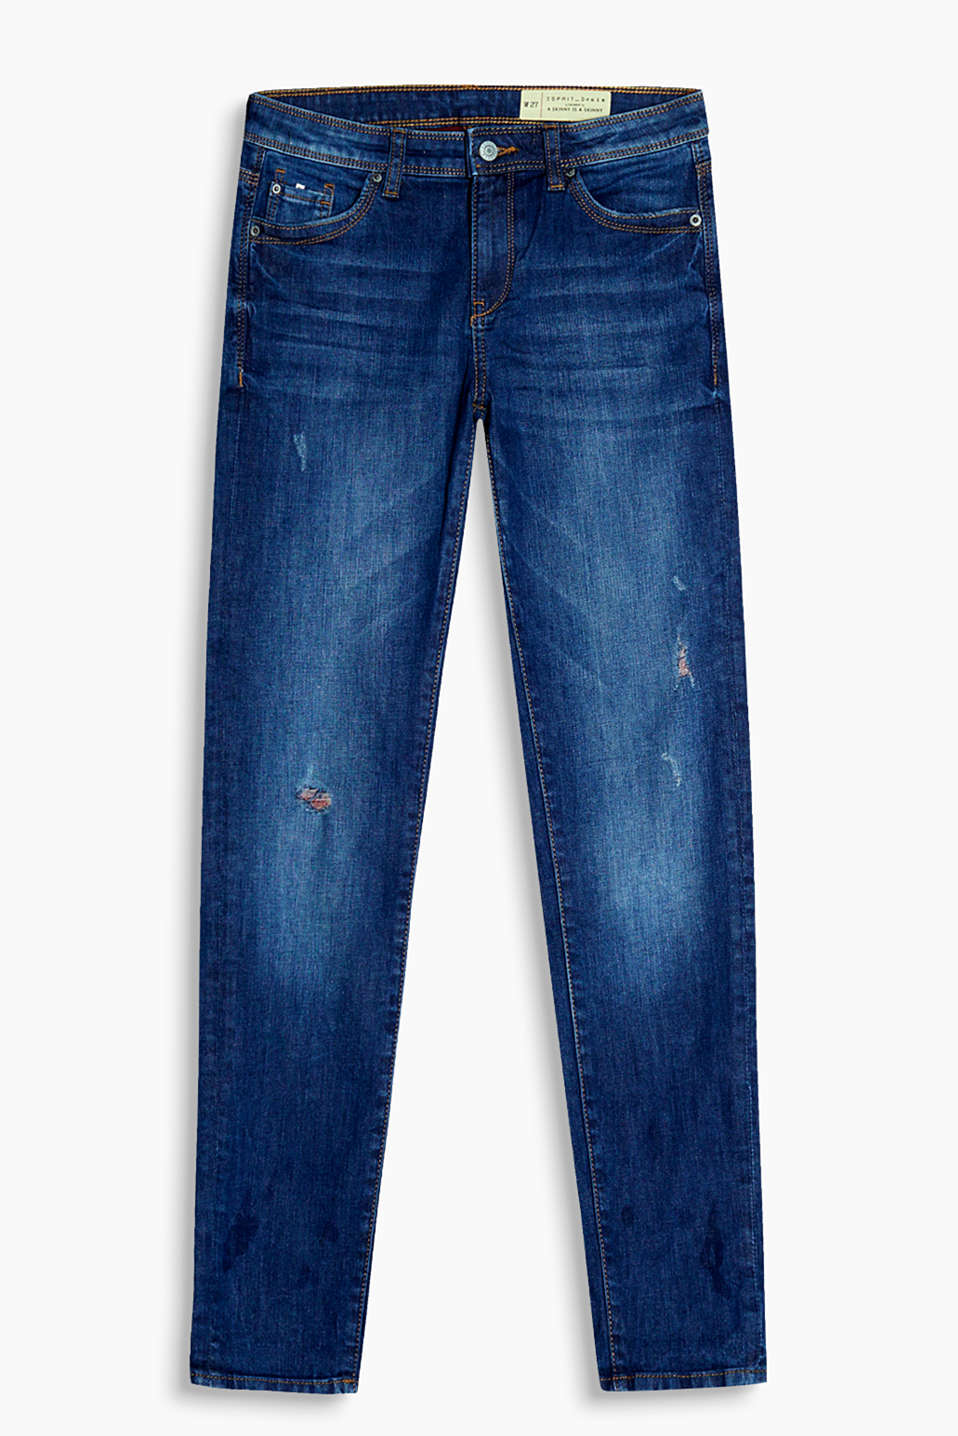 Esprit - Stretch jeans with destroyed effects